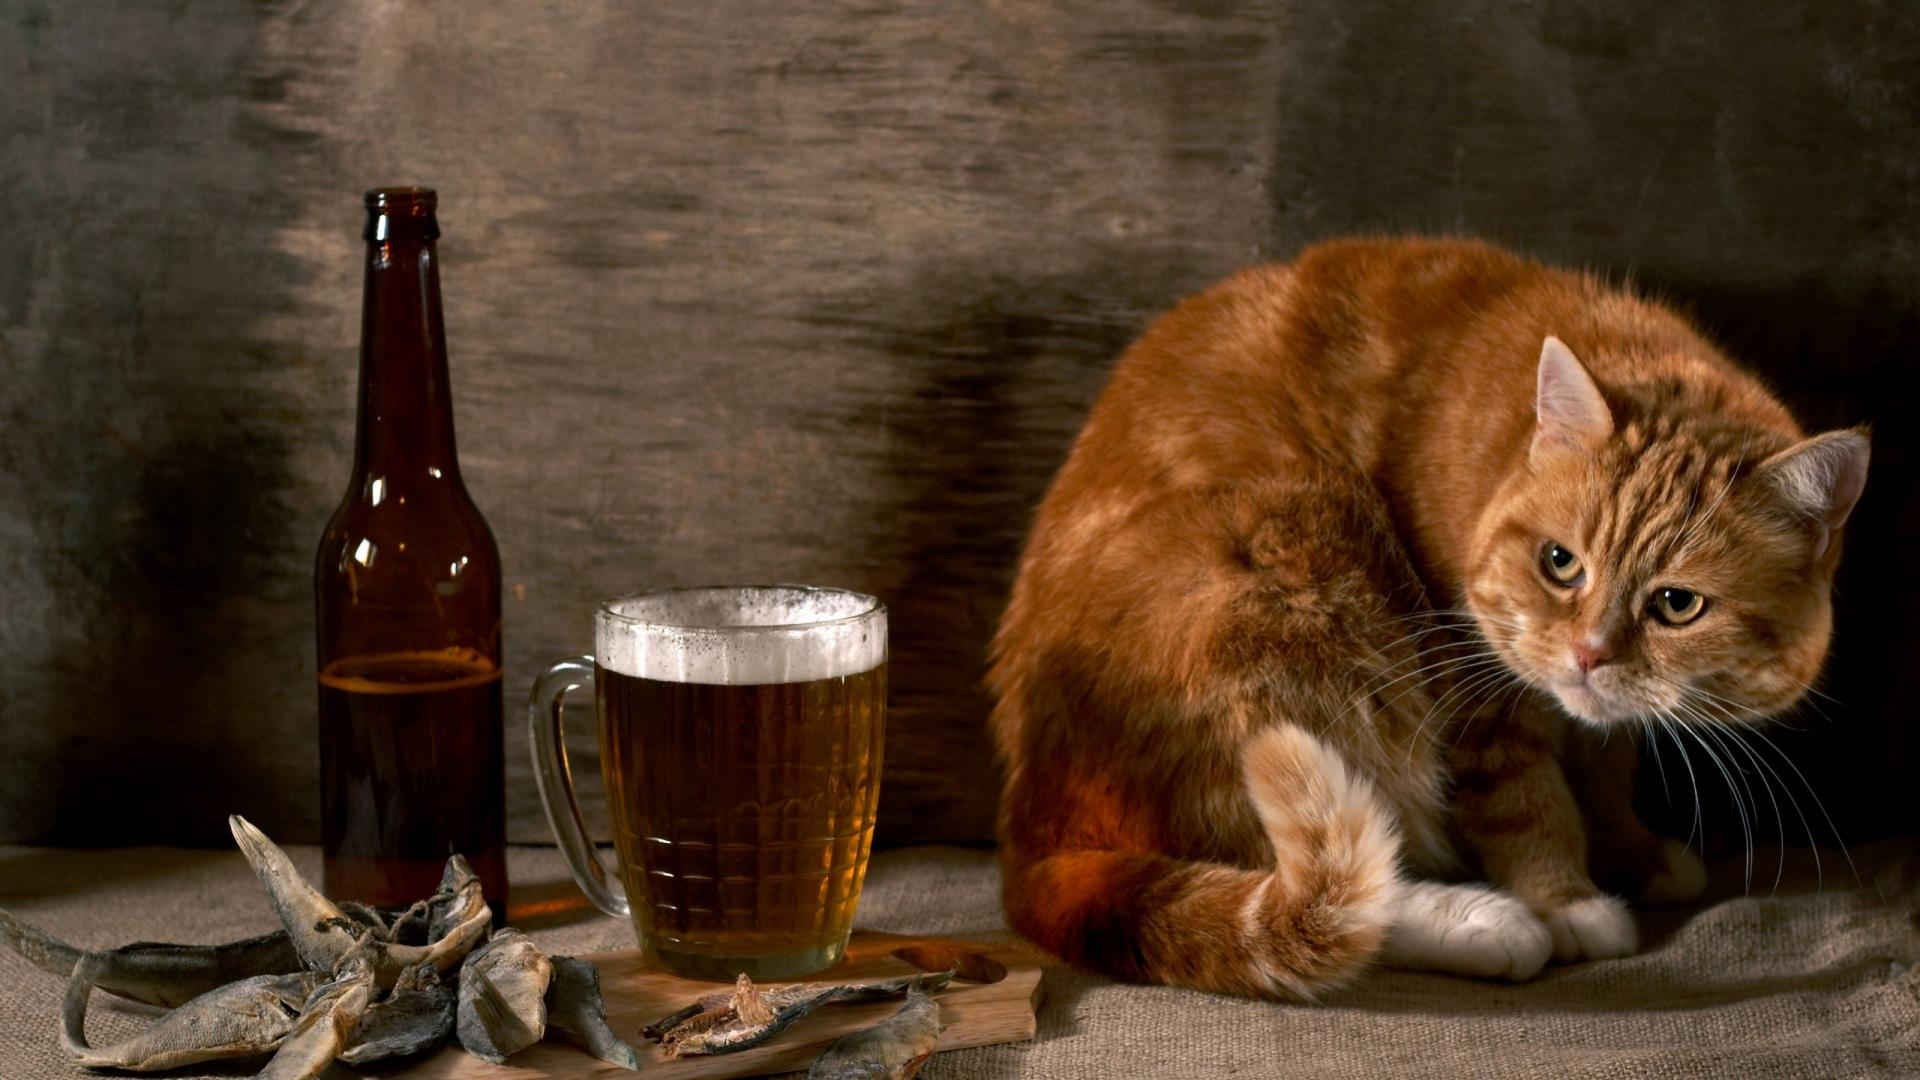 Cat-And-Beer-Funny-Animal-Wallpaper-HD-free-for-desktop ...